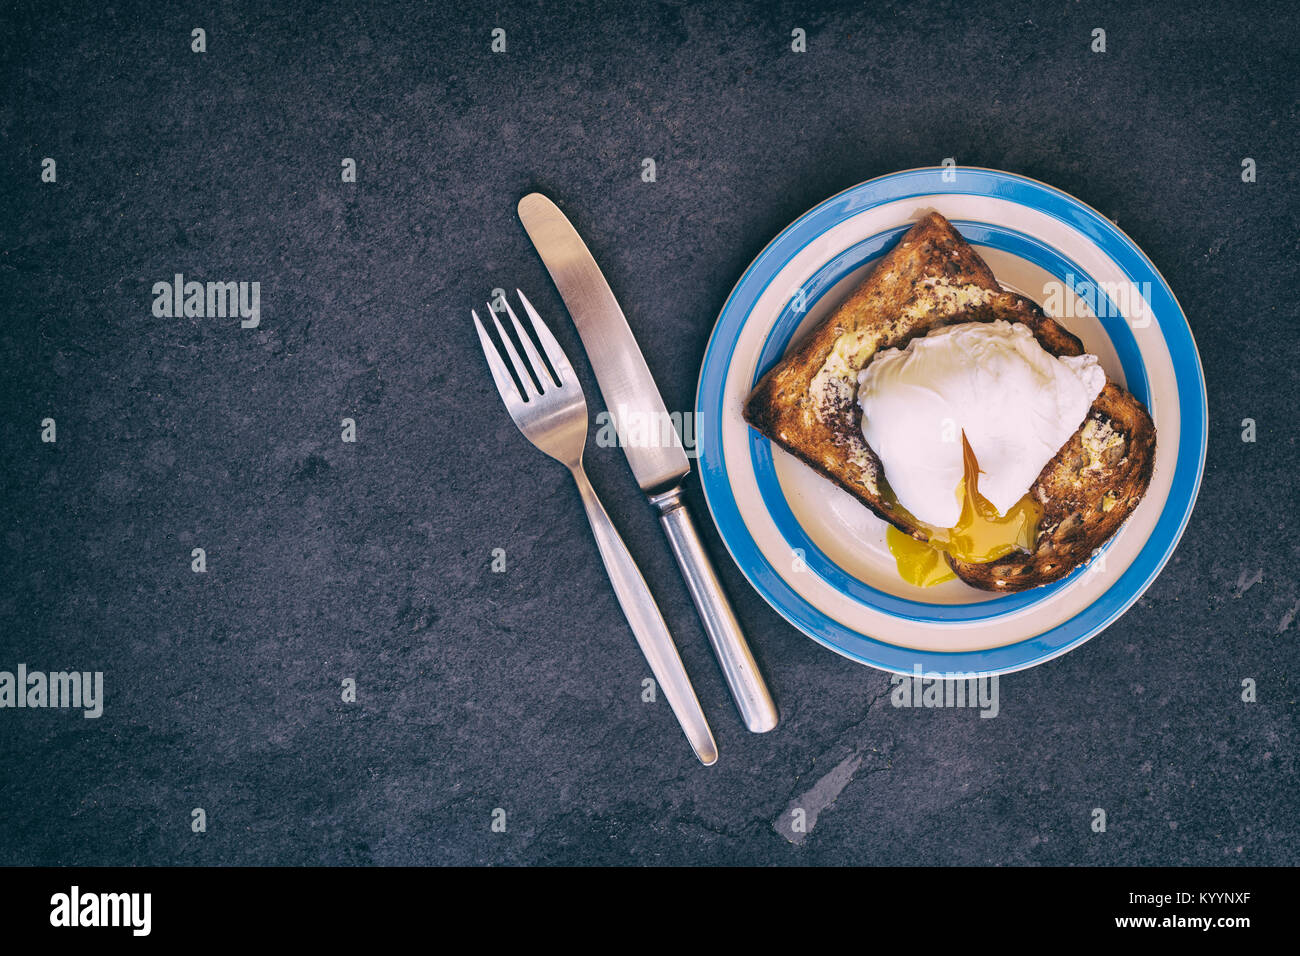 Poached egg on toast on a slate background from above. Vintage filter applied Stock Photo